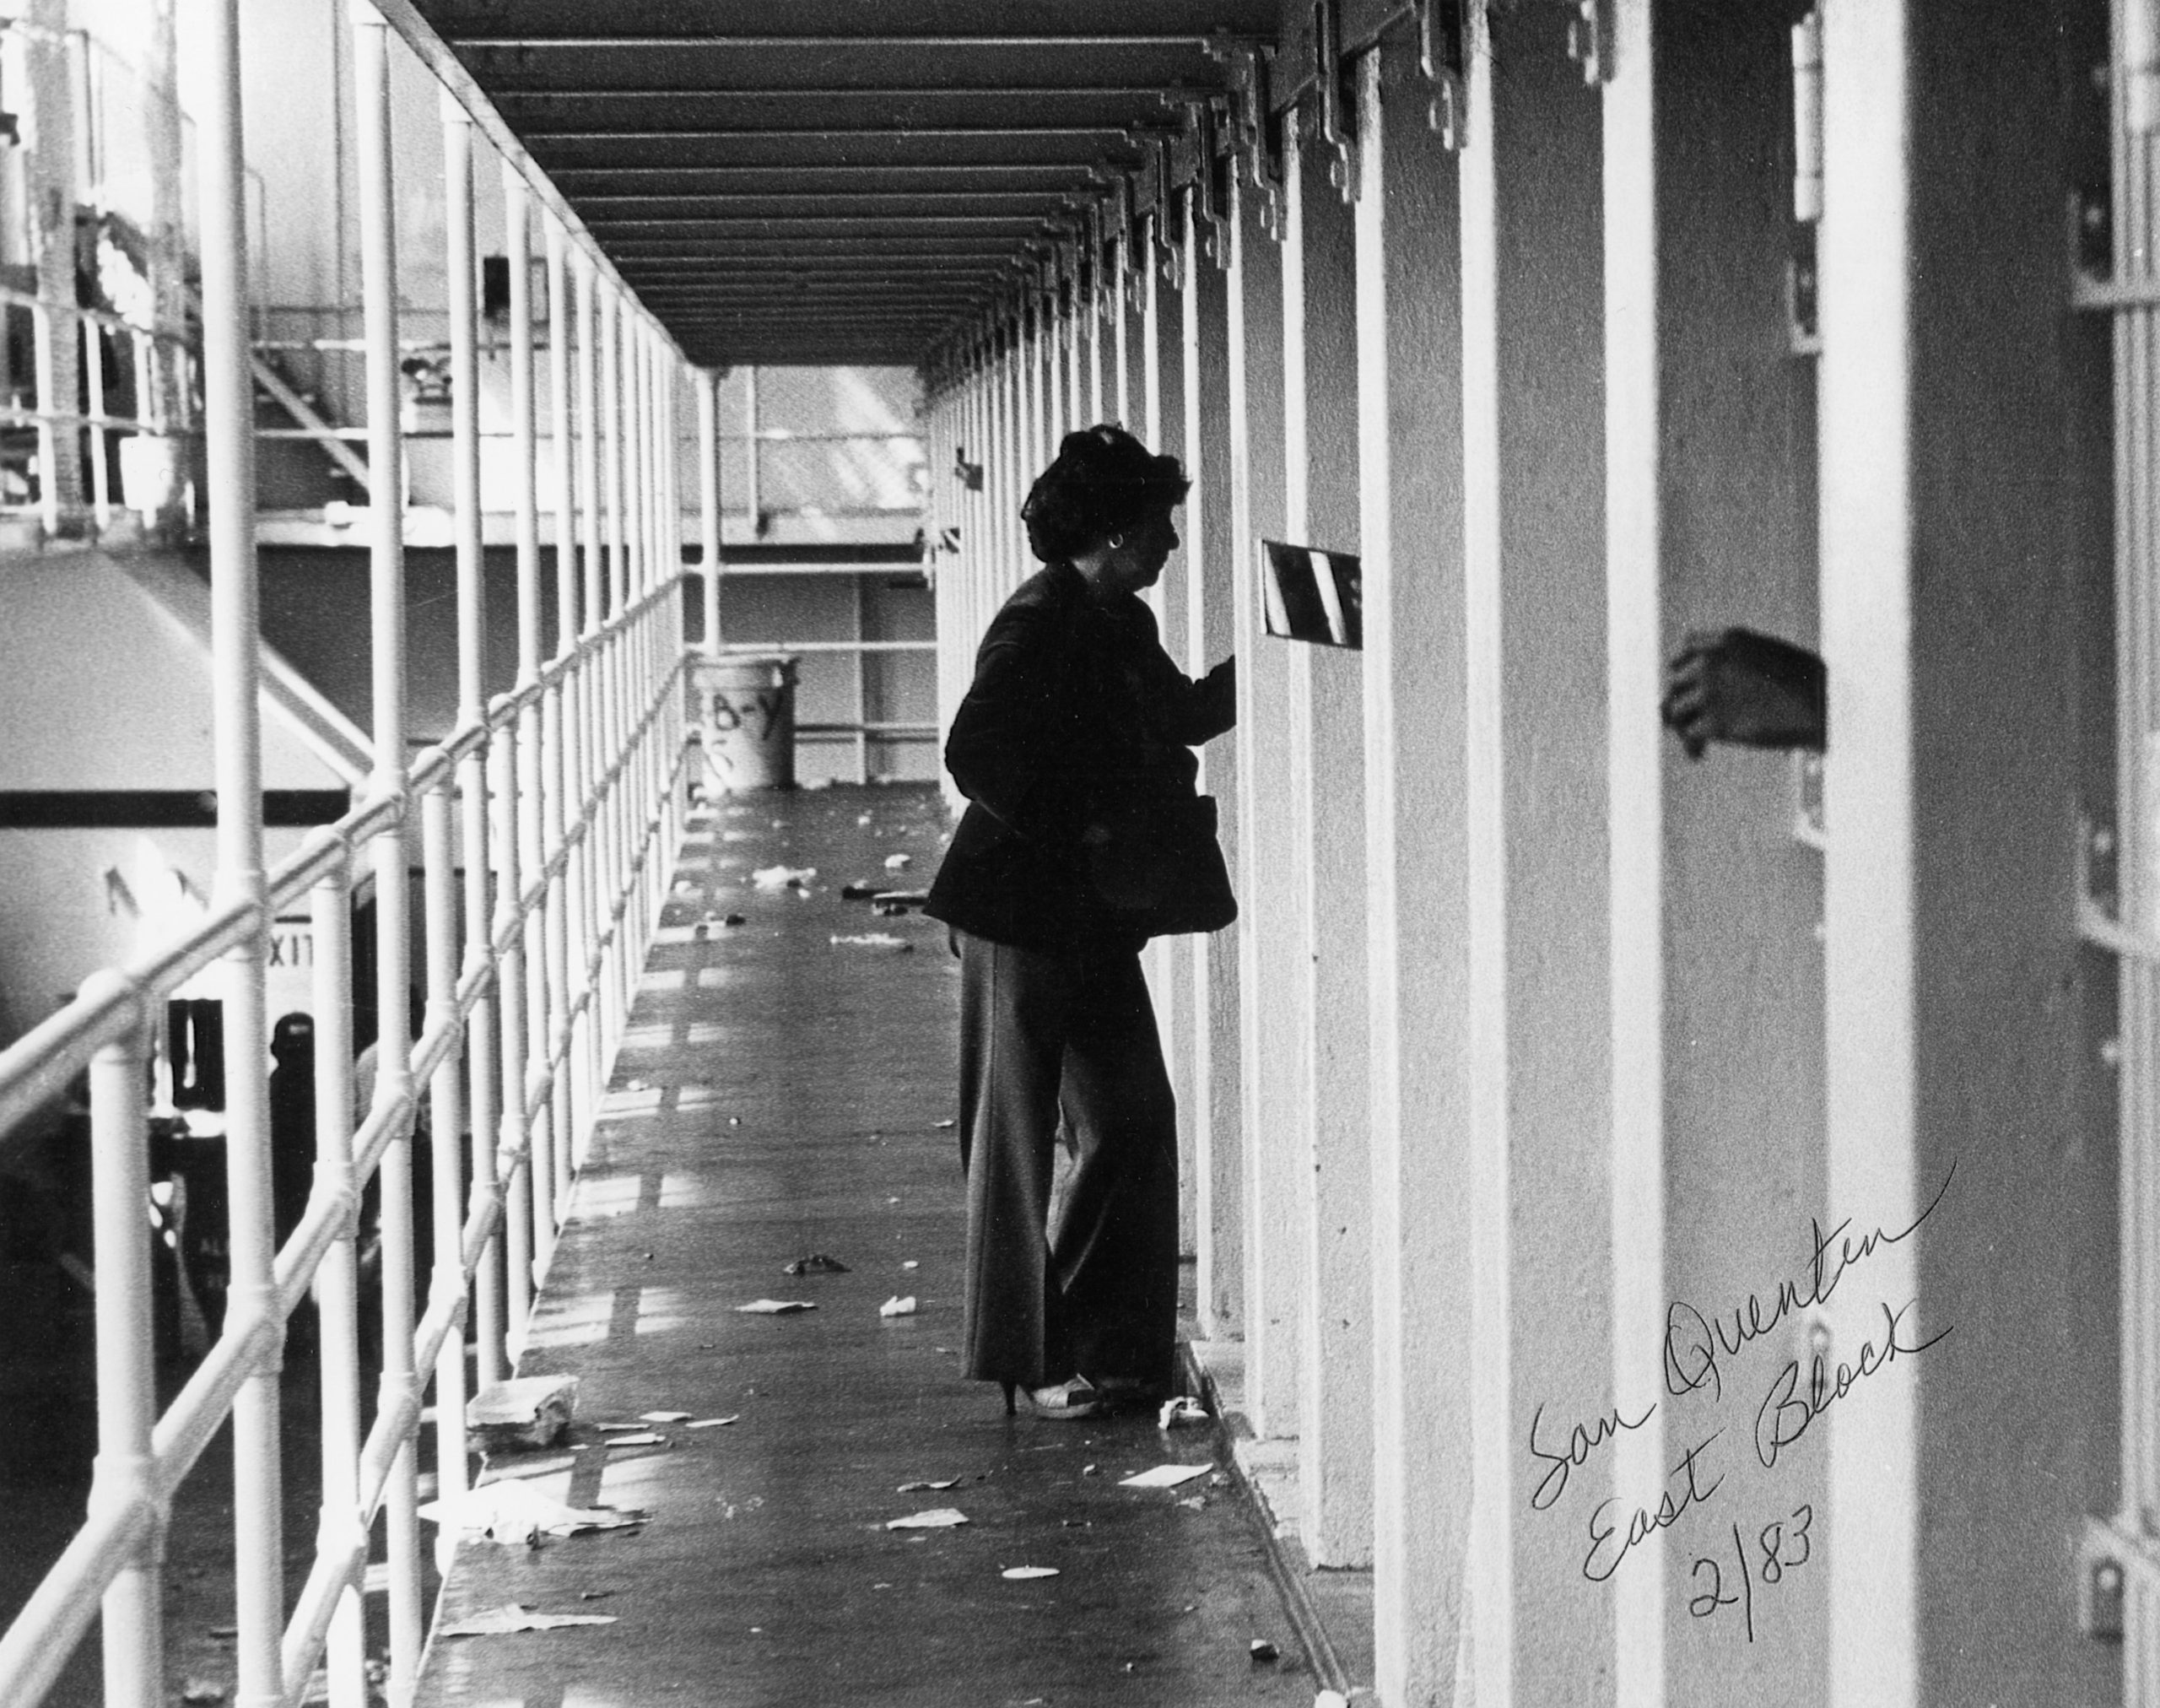 Woman speaks to an inmate through the bars of a cell door.